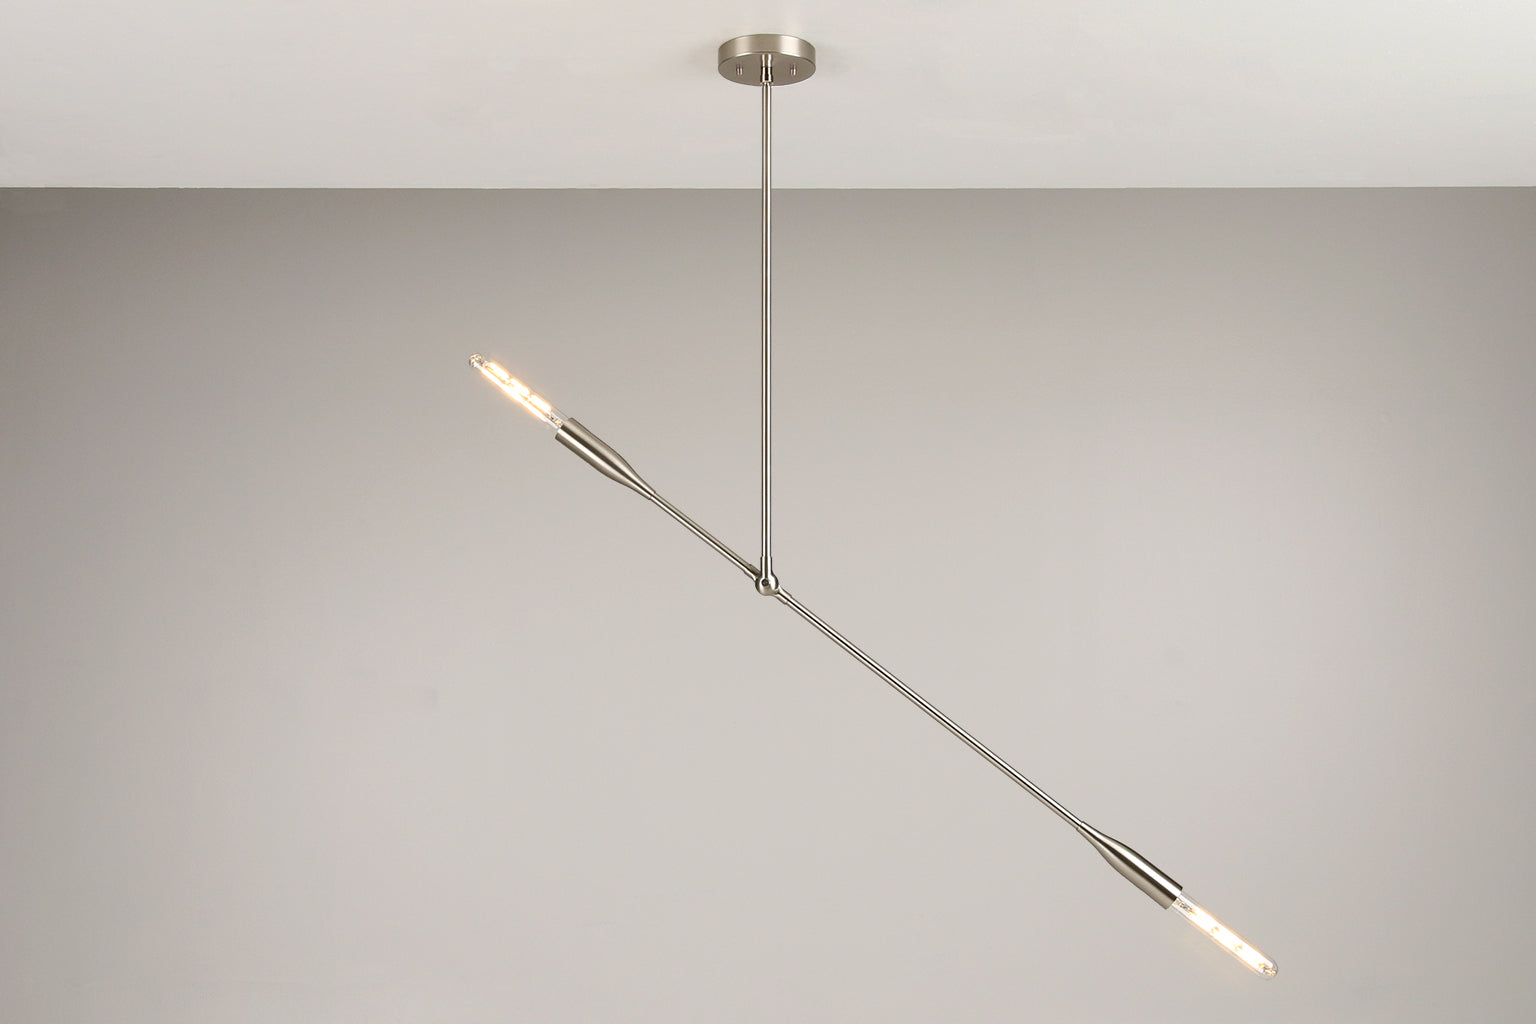 Contemporary Sorenthia Light fixture in Brushed Nickel by Studio DUNN with a grey wall background and white ceiling